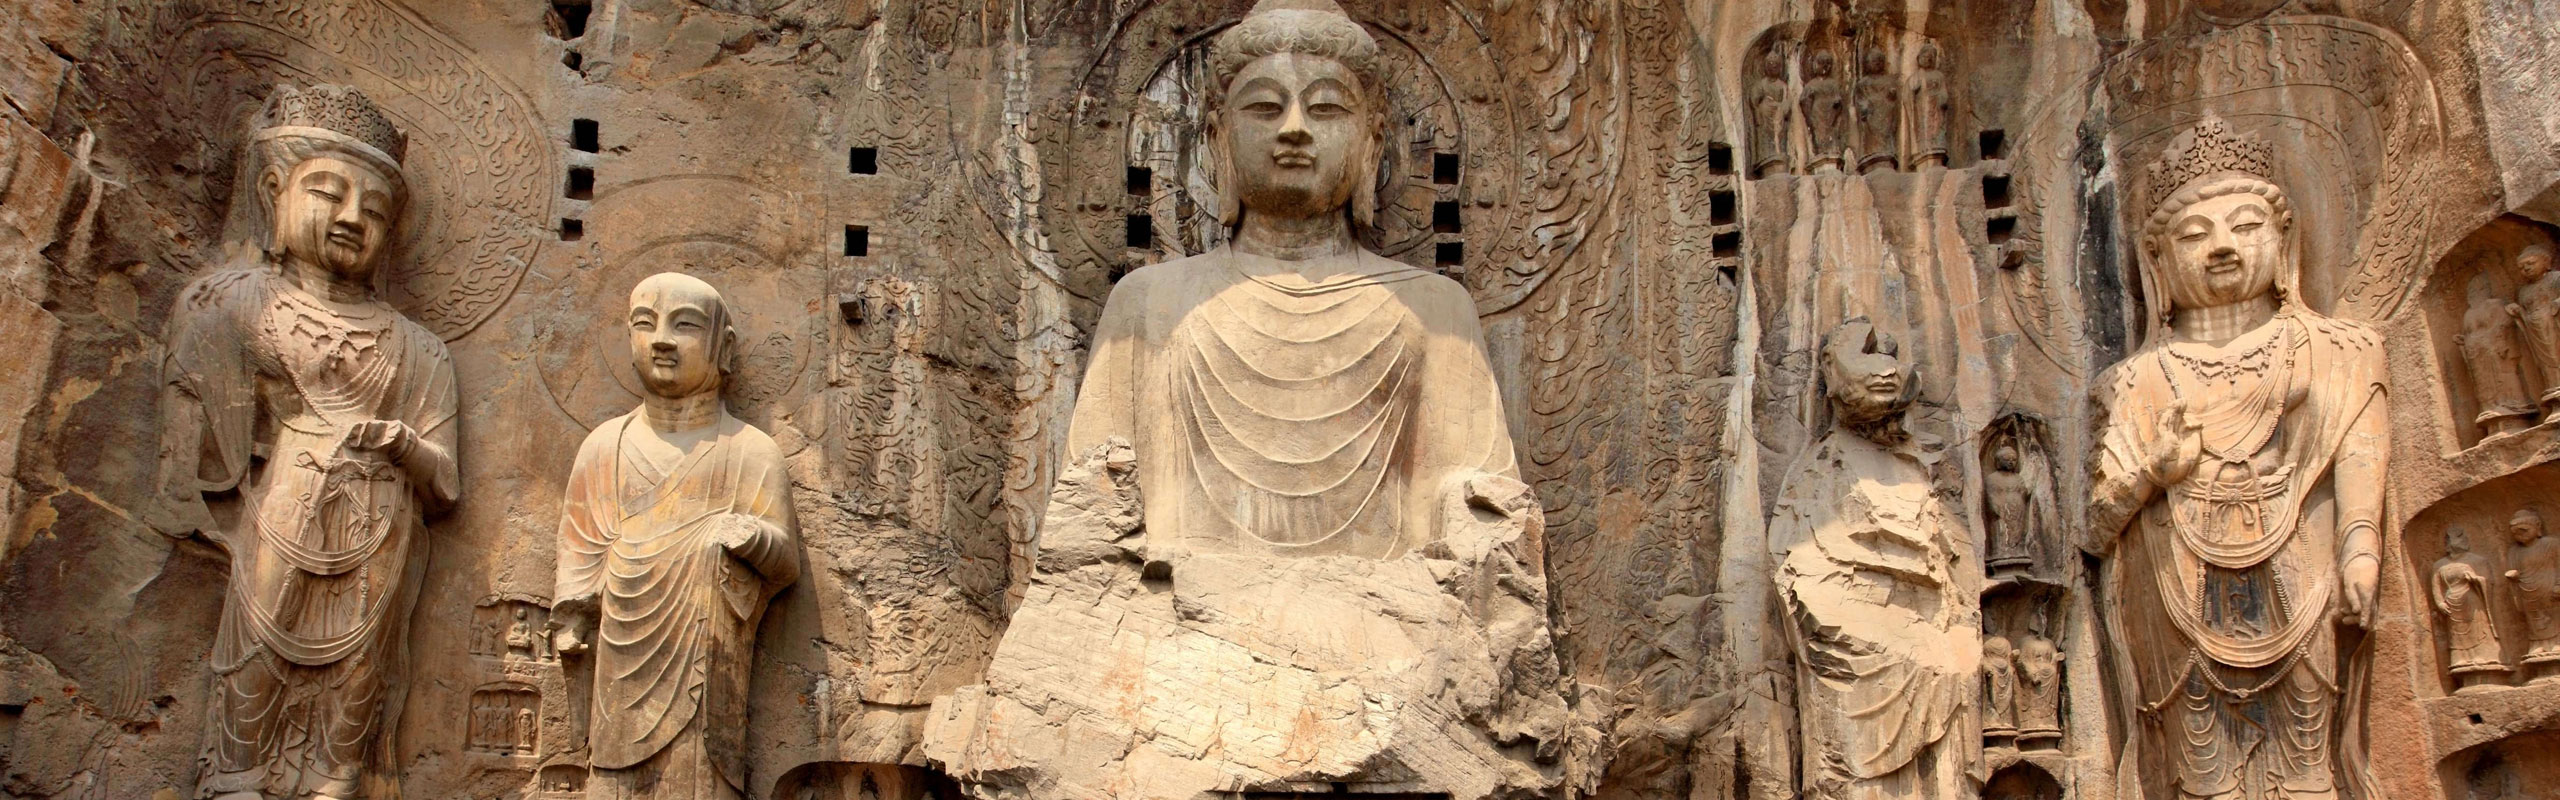 Round Day Trip from Xi'an to Luoyang and Shaolin Temple by HSR